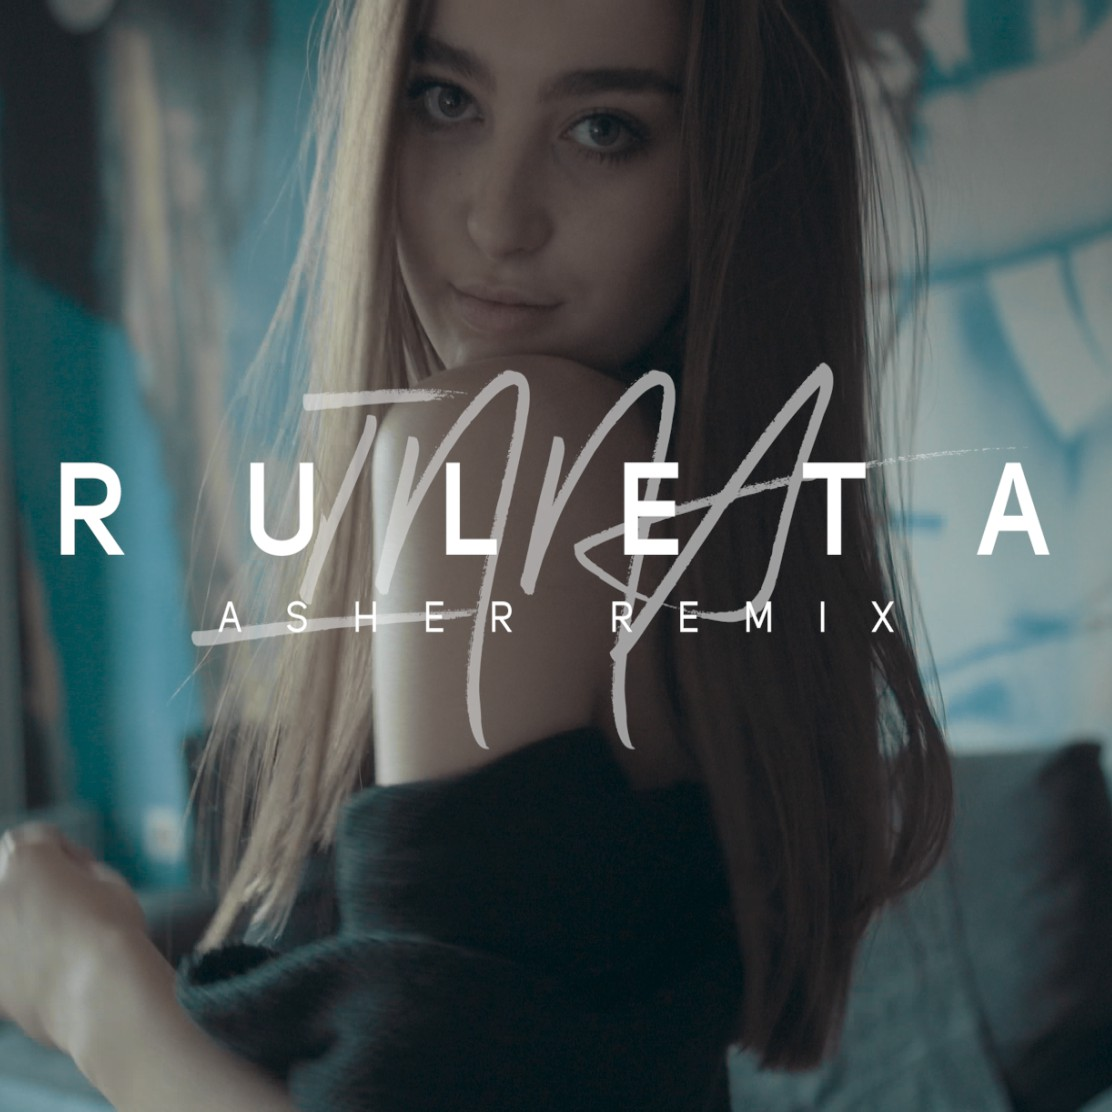 Inna Ruleta Asher Remix By Asher Free Download On Hypeddit